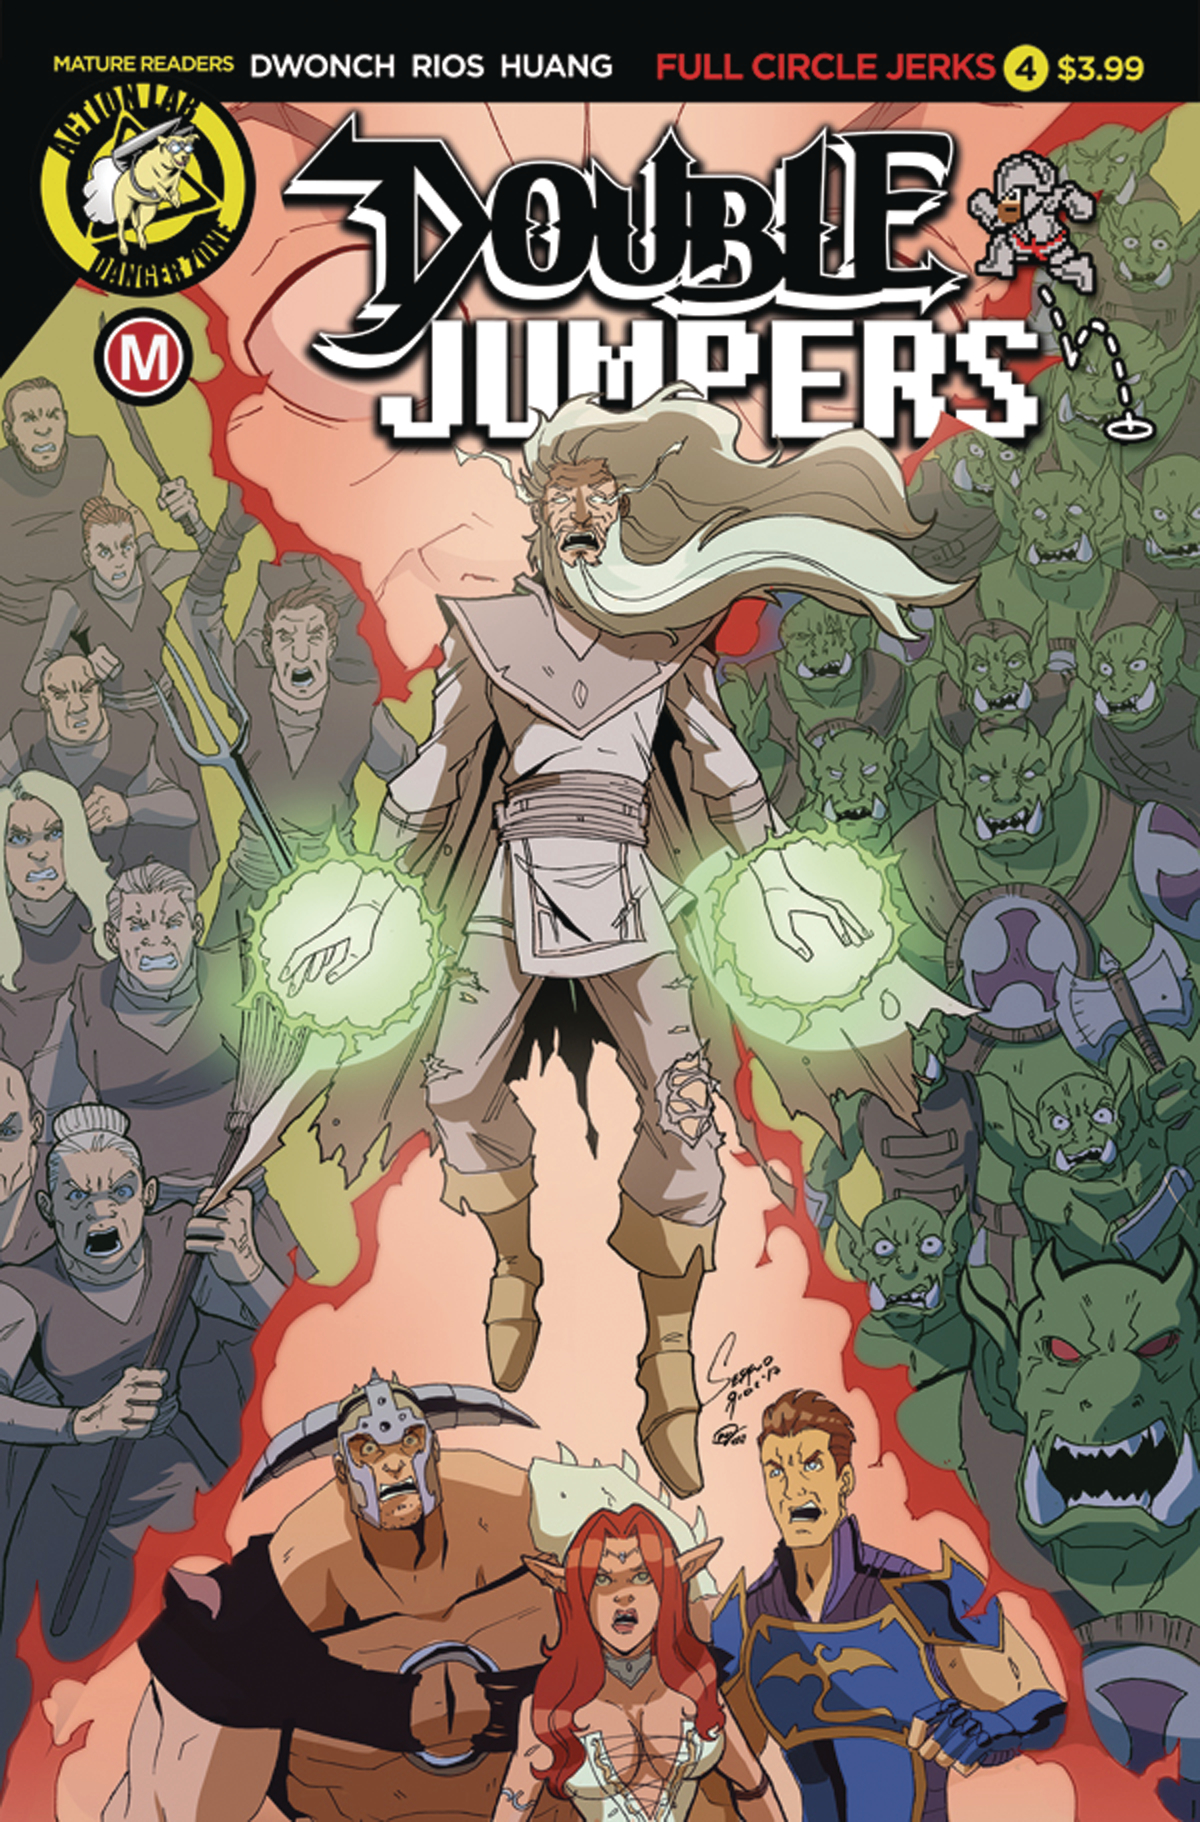 DOUBLE JUMPERS FULL CIRCLE JERKS #4 (OF 4) CVR A RIOS (MR)